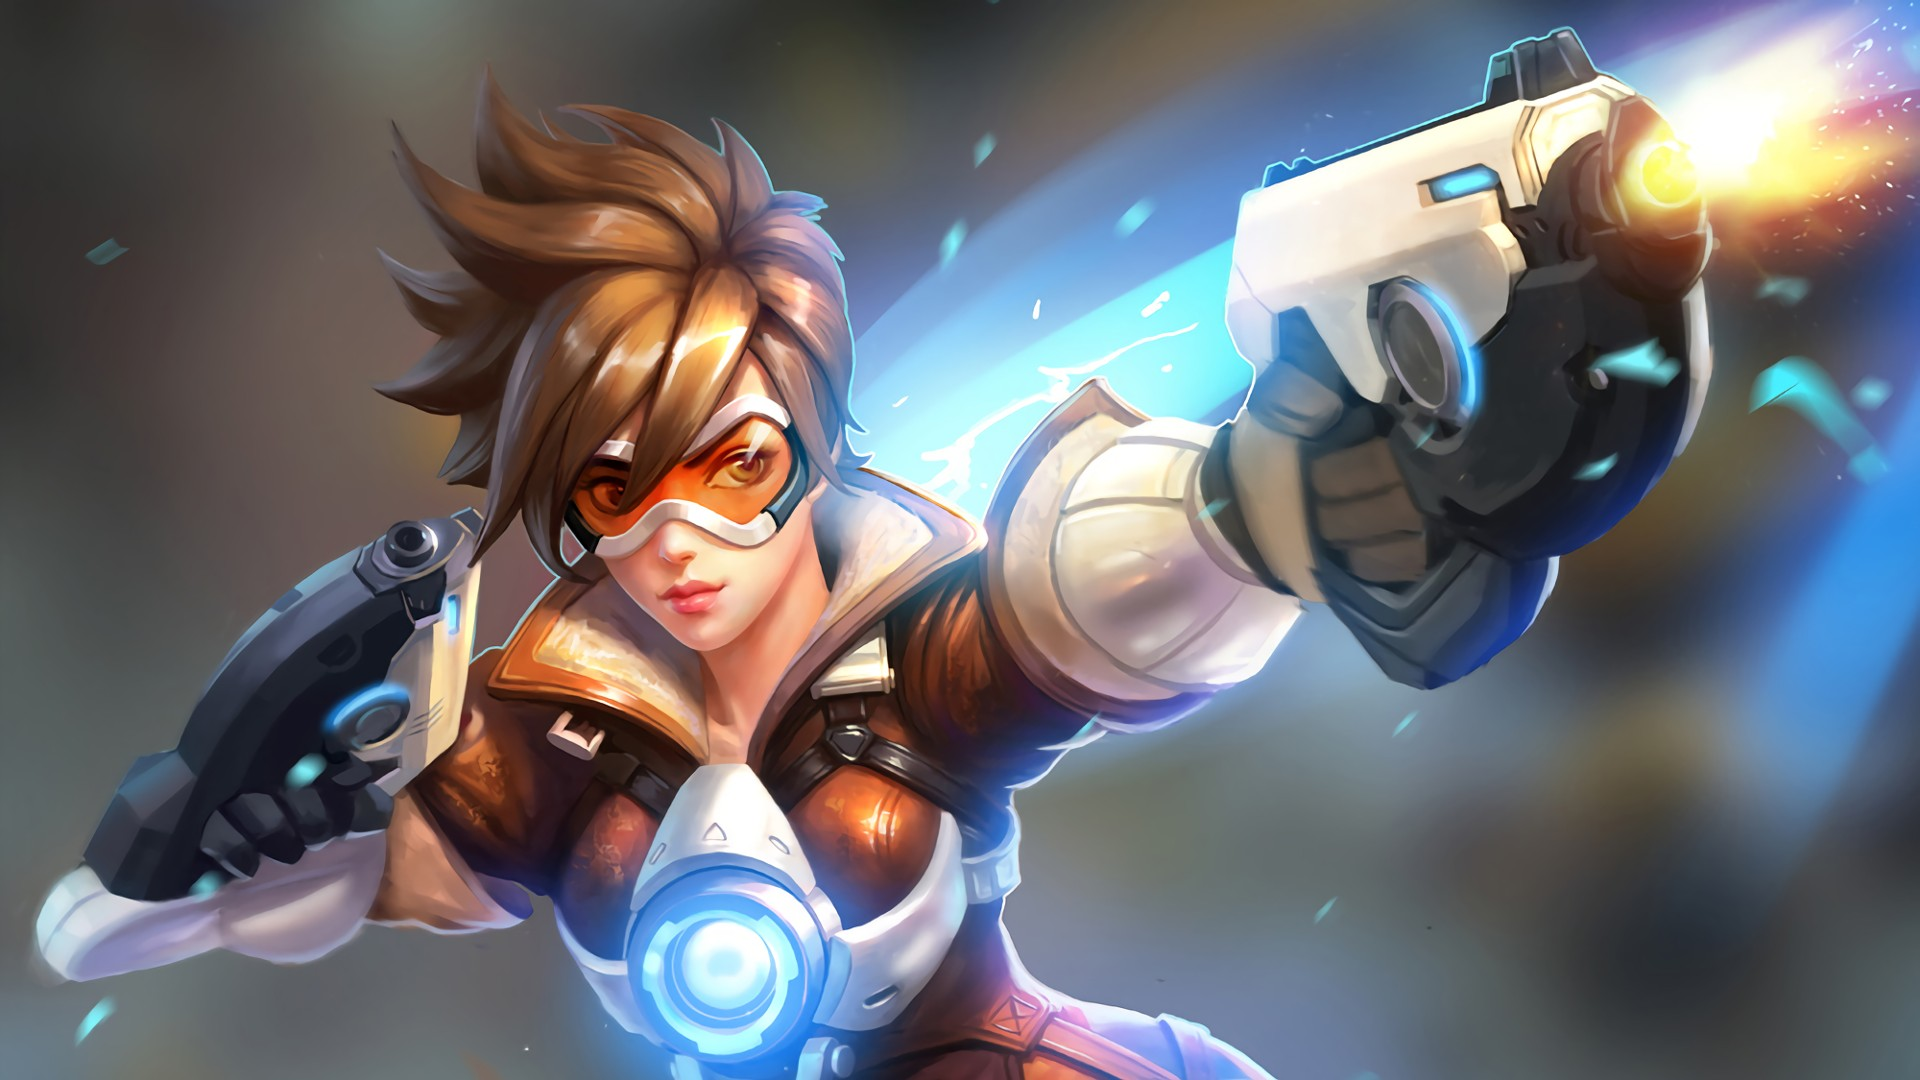 Tracer Overwatch Wallpaper Download Free Cool Hd Backgrounds For